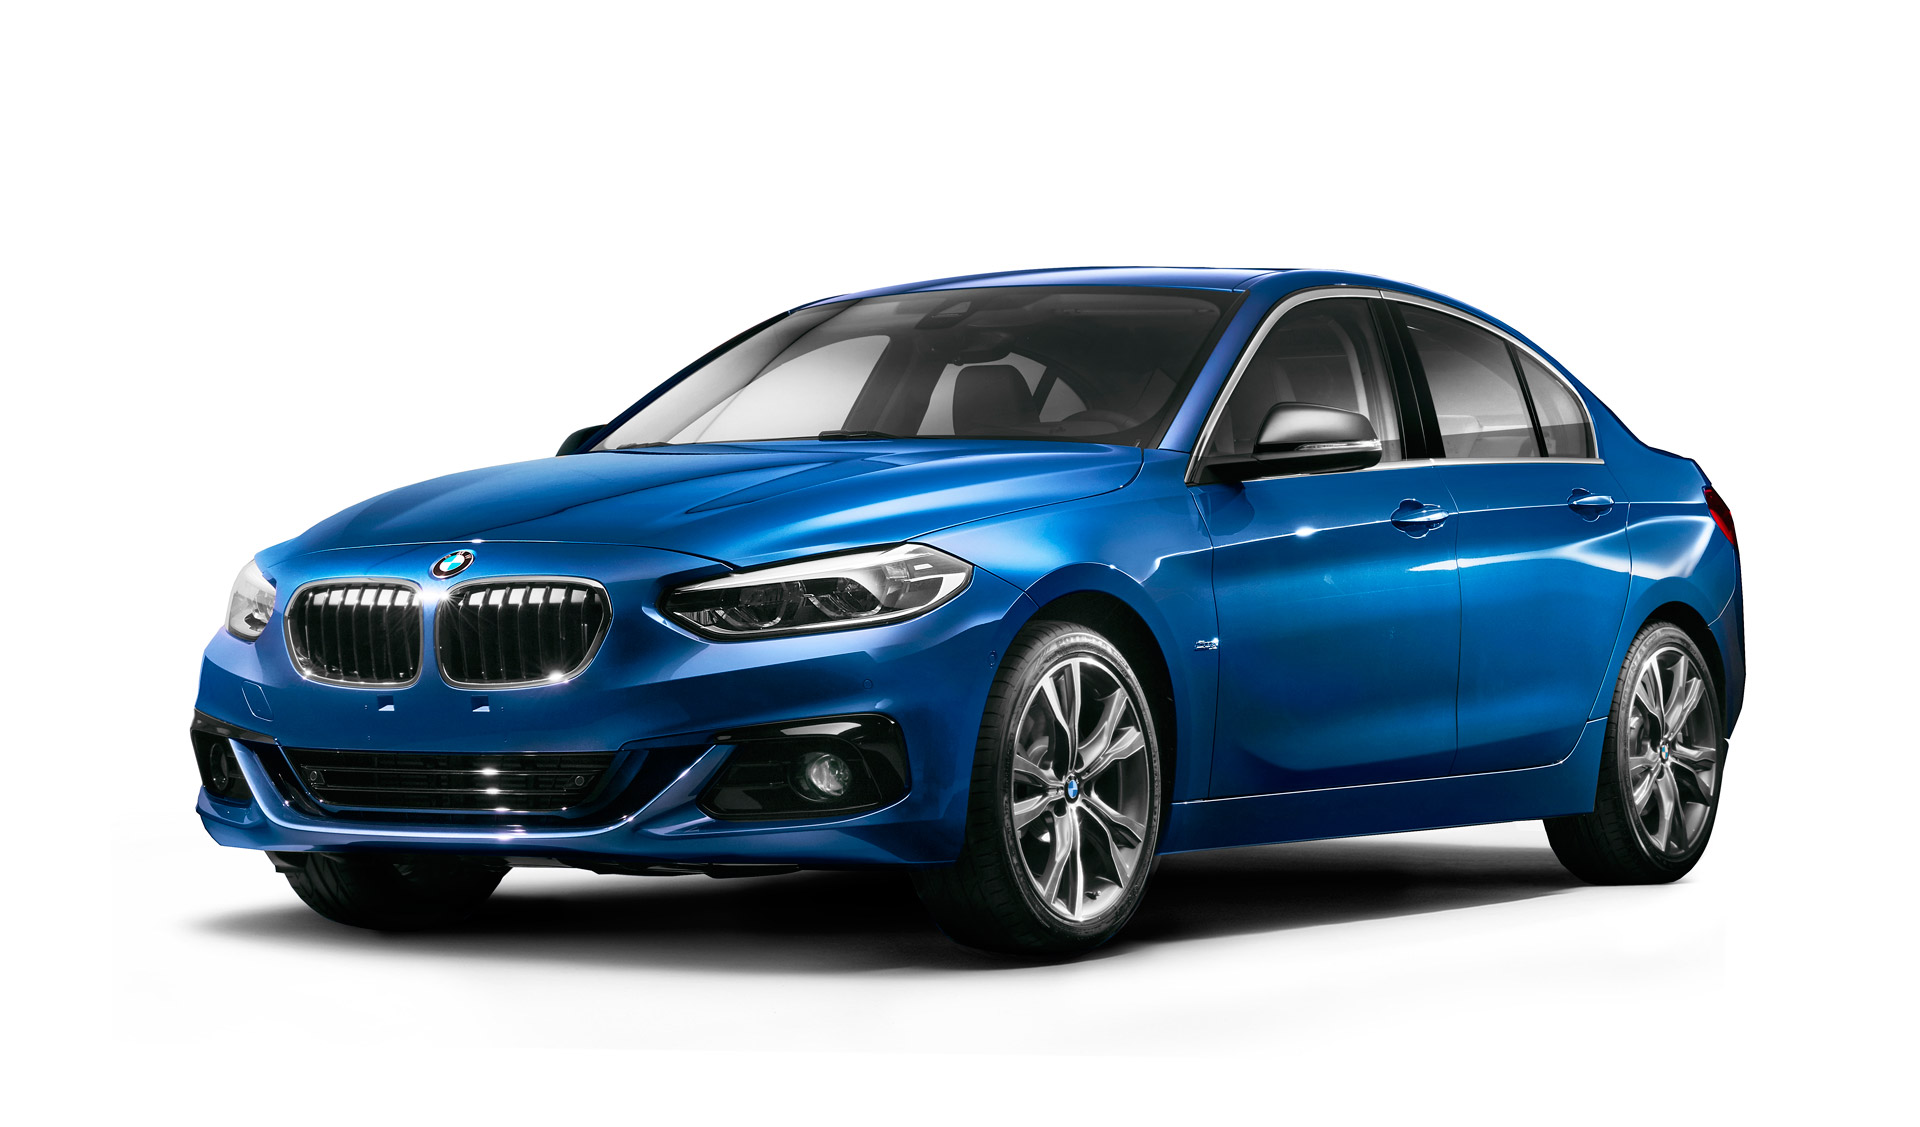 BMW 1-Series sedan, Ford Mustang Shelby GT350, Jeep Wrangler Salute: This Week's Top Photos